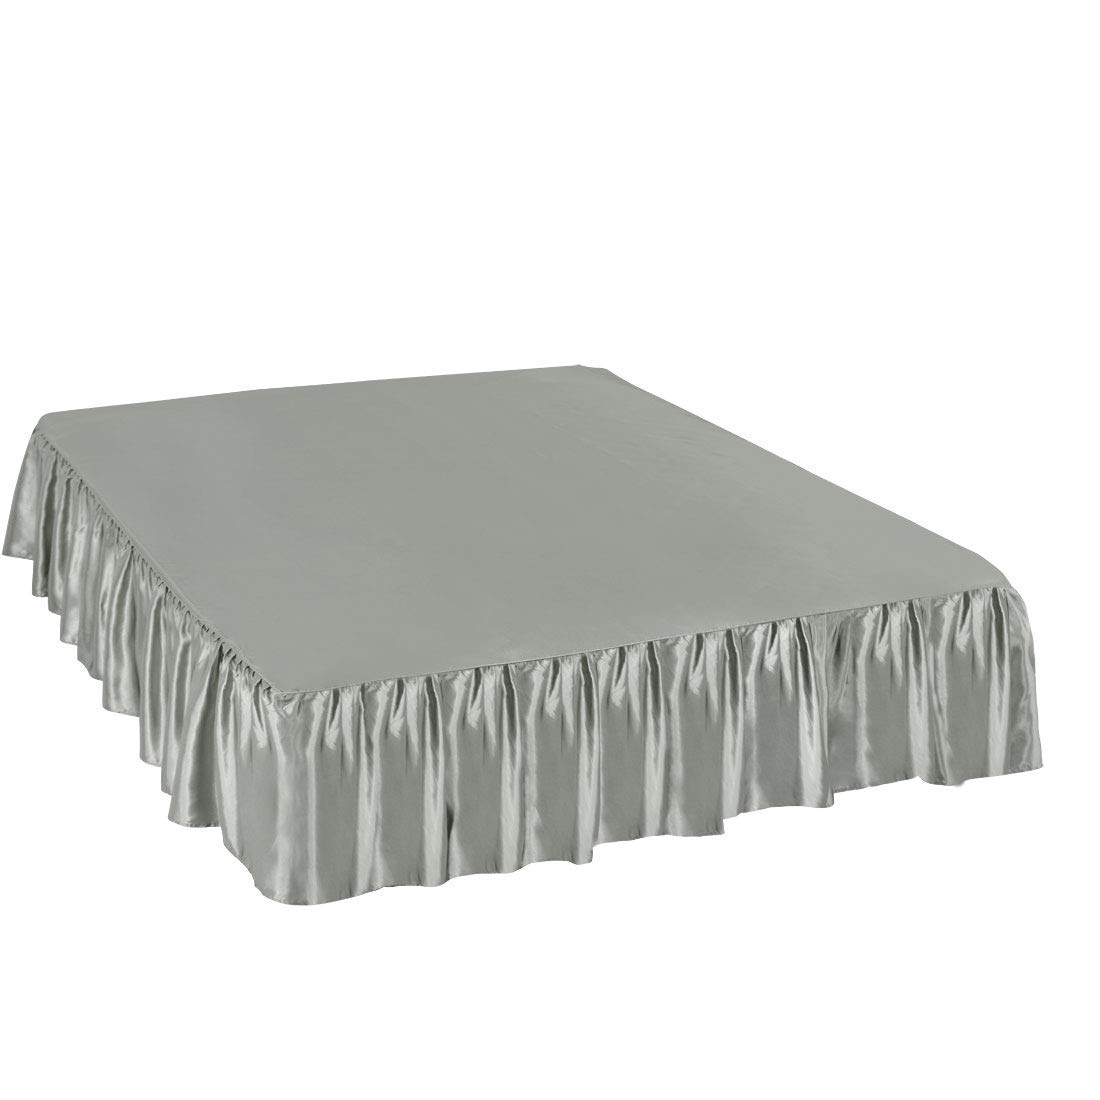 WINGS COLLECTION Fade Resistance Smooth Satin Silk 1 PC Dust Ruffle Bed Skirt 11 inch Drop (Silver Grey, Full Size) Fully Elastic for Easy Fit Single Ruffled Bedskirt by WINGS COLLECTION (Image #4)